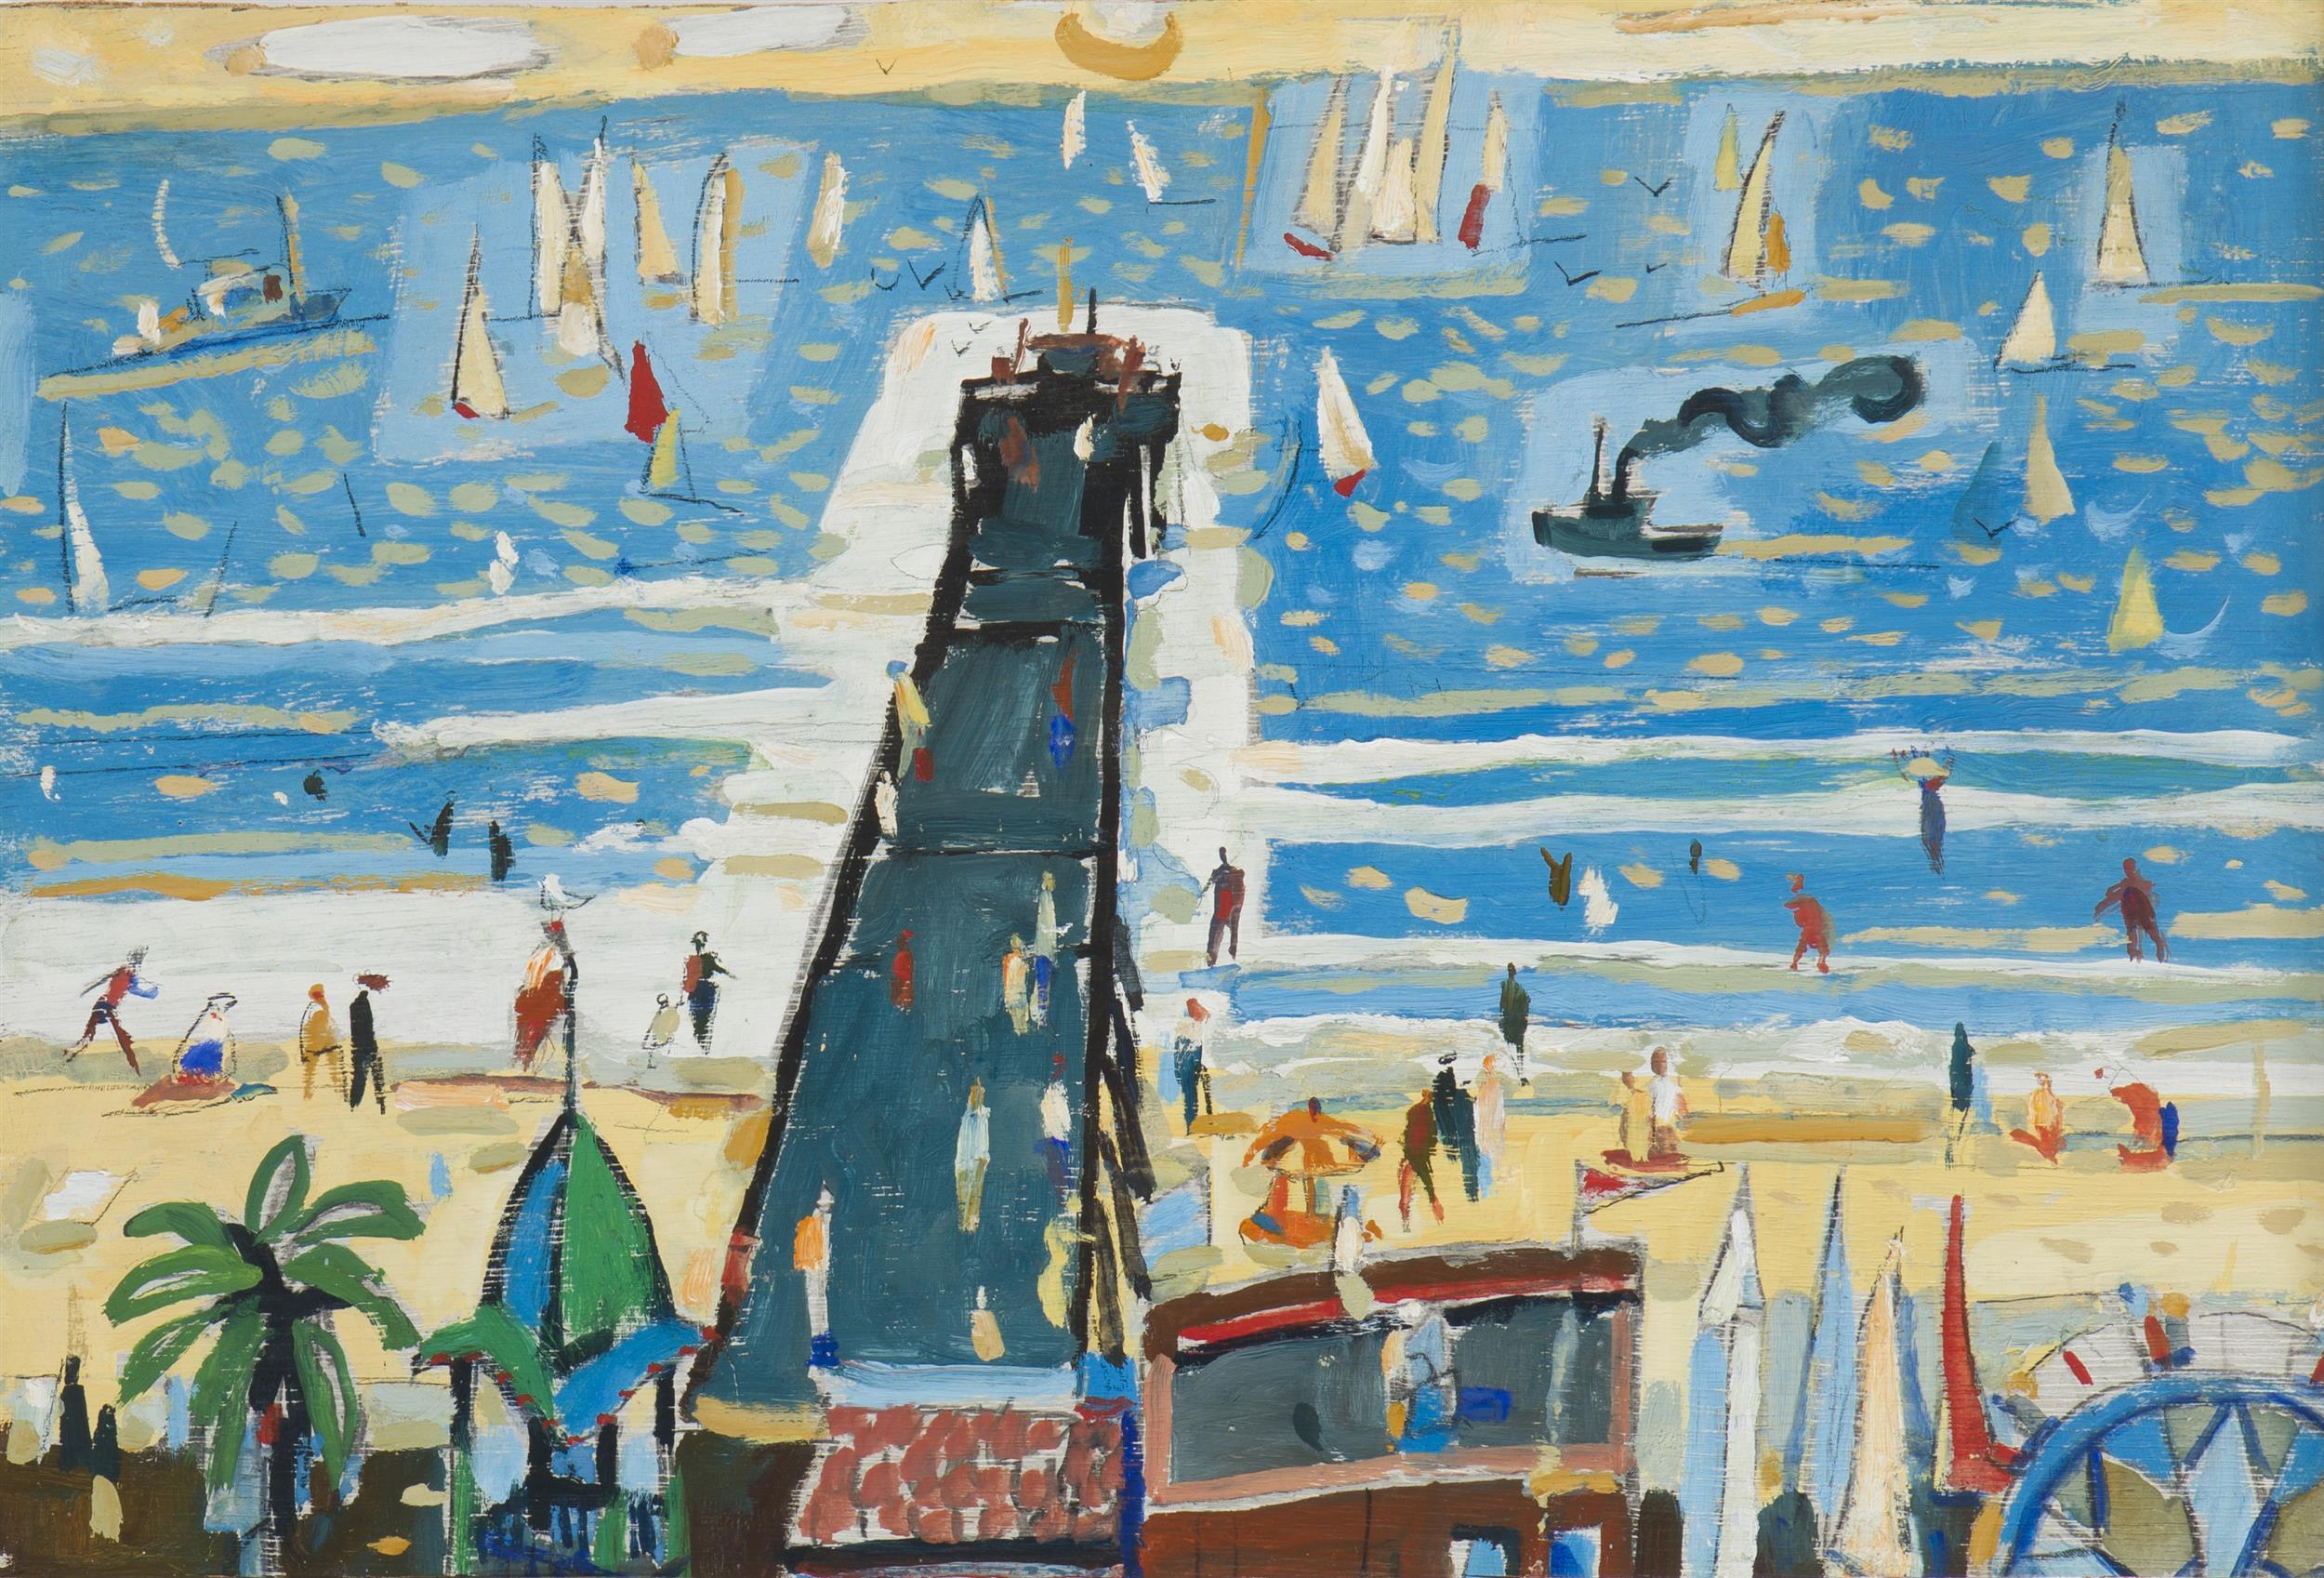 """Attributed to Phil Latimer Dike NA, (1906-1990 Claremont, CA), Balboa Pier, Oil on wood panel under glass, Sight: 13"""" H x 19.5"""" W"""